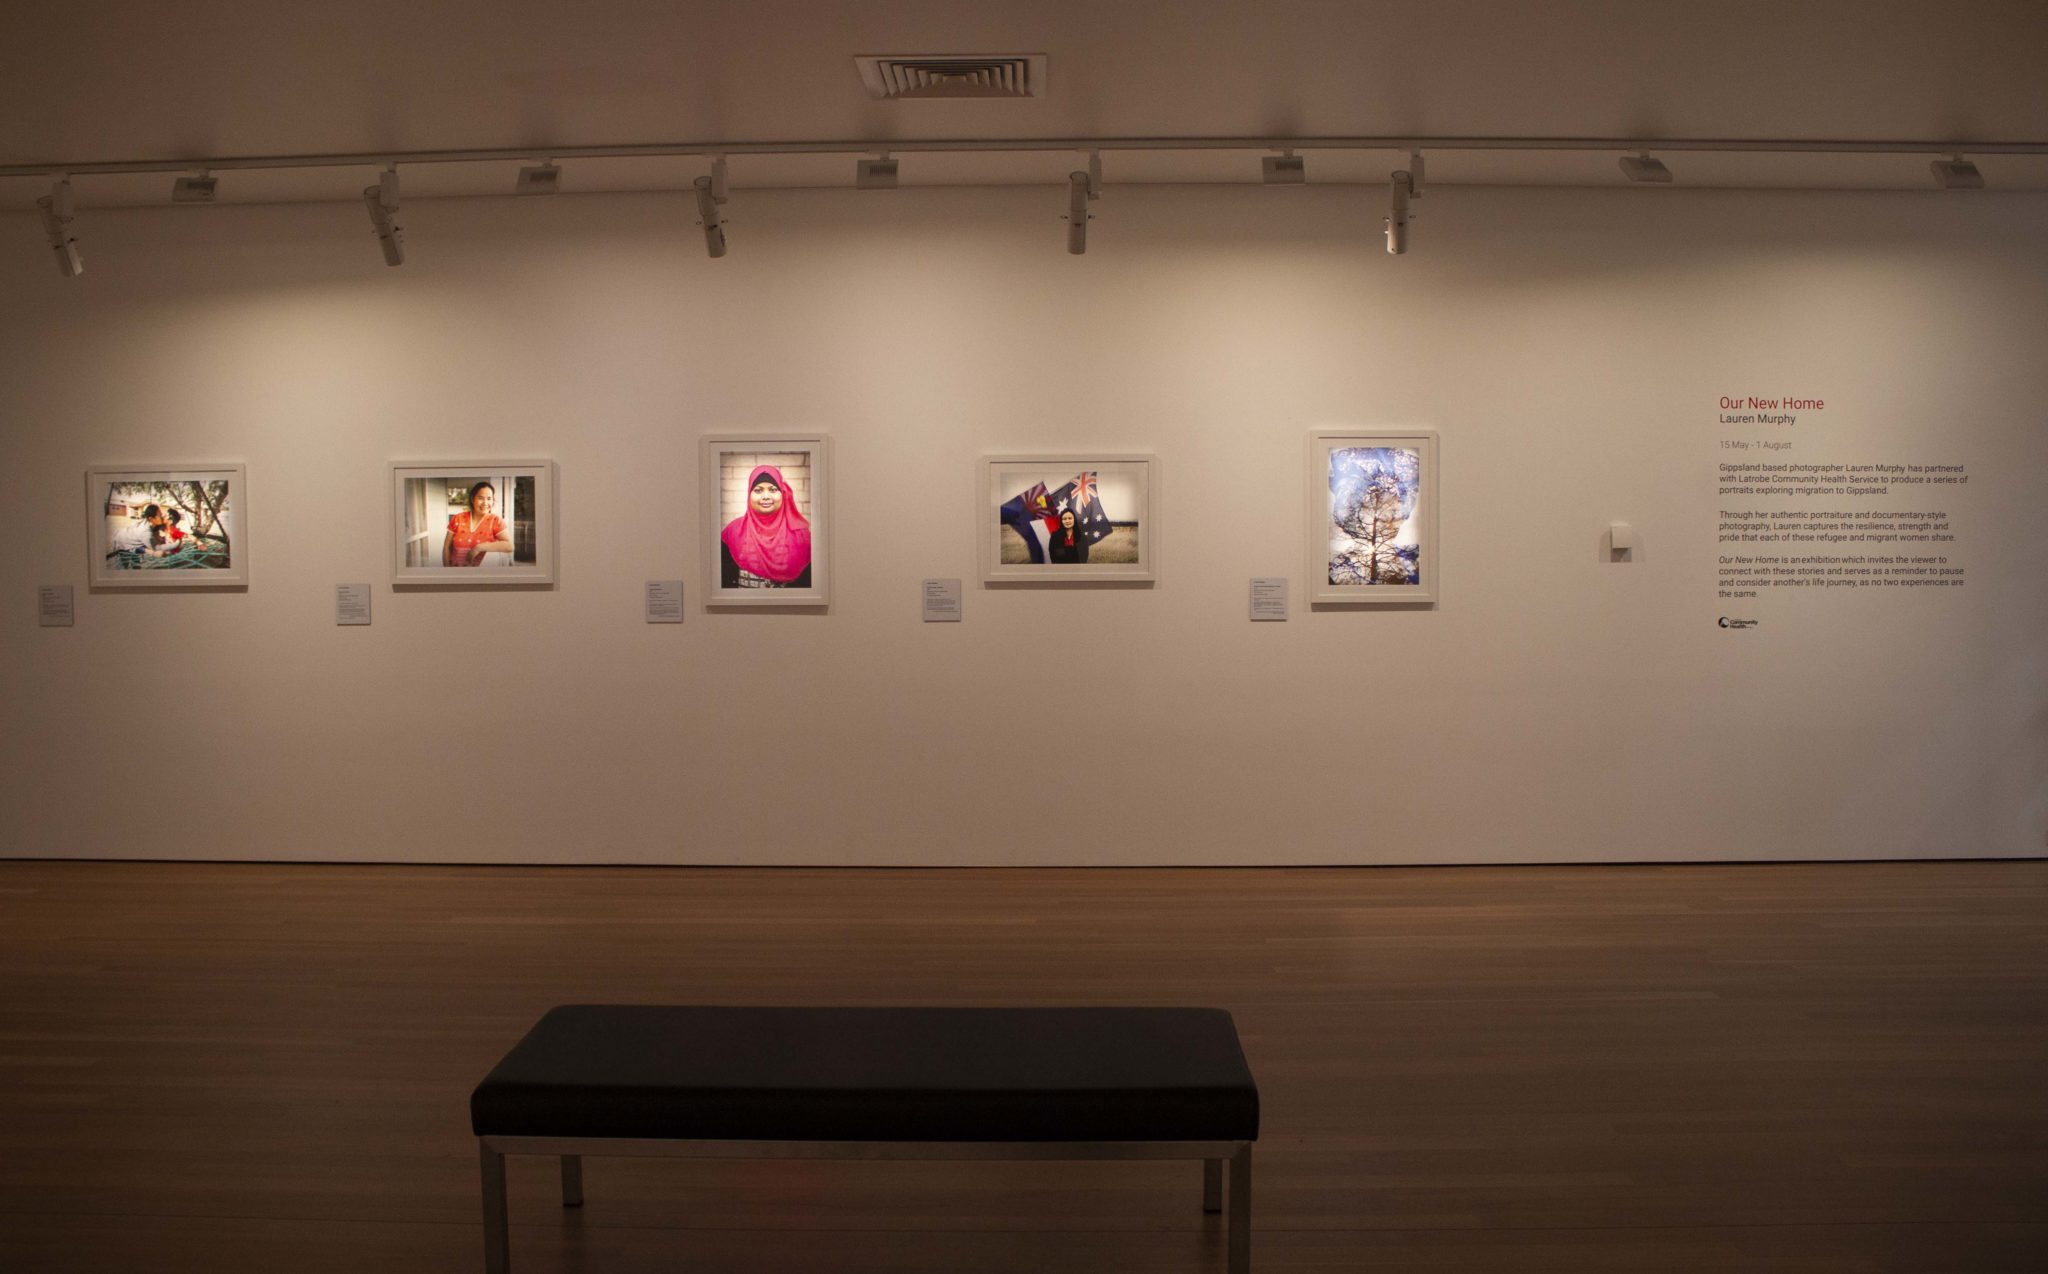 Exhibition documentation of Our New Home, Lauren Murphy in partnership with Latrobe Community Health Service, shown in Gallery 6, Latrobe Regional Gallery, 2021.